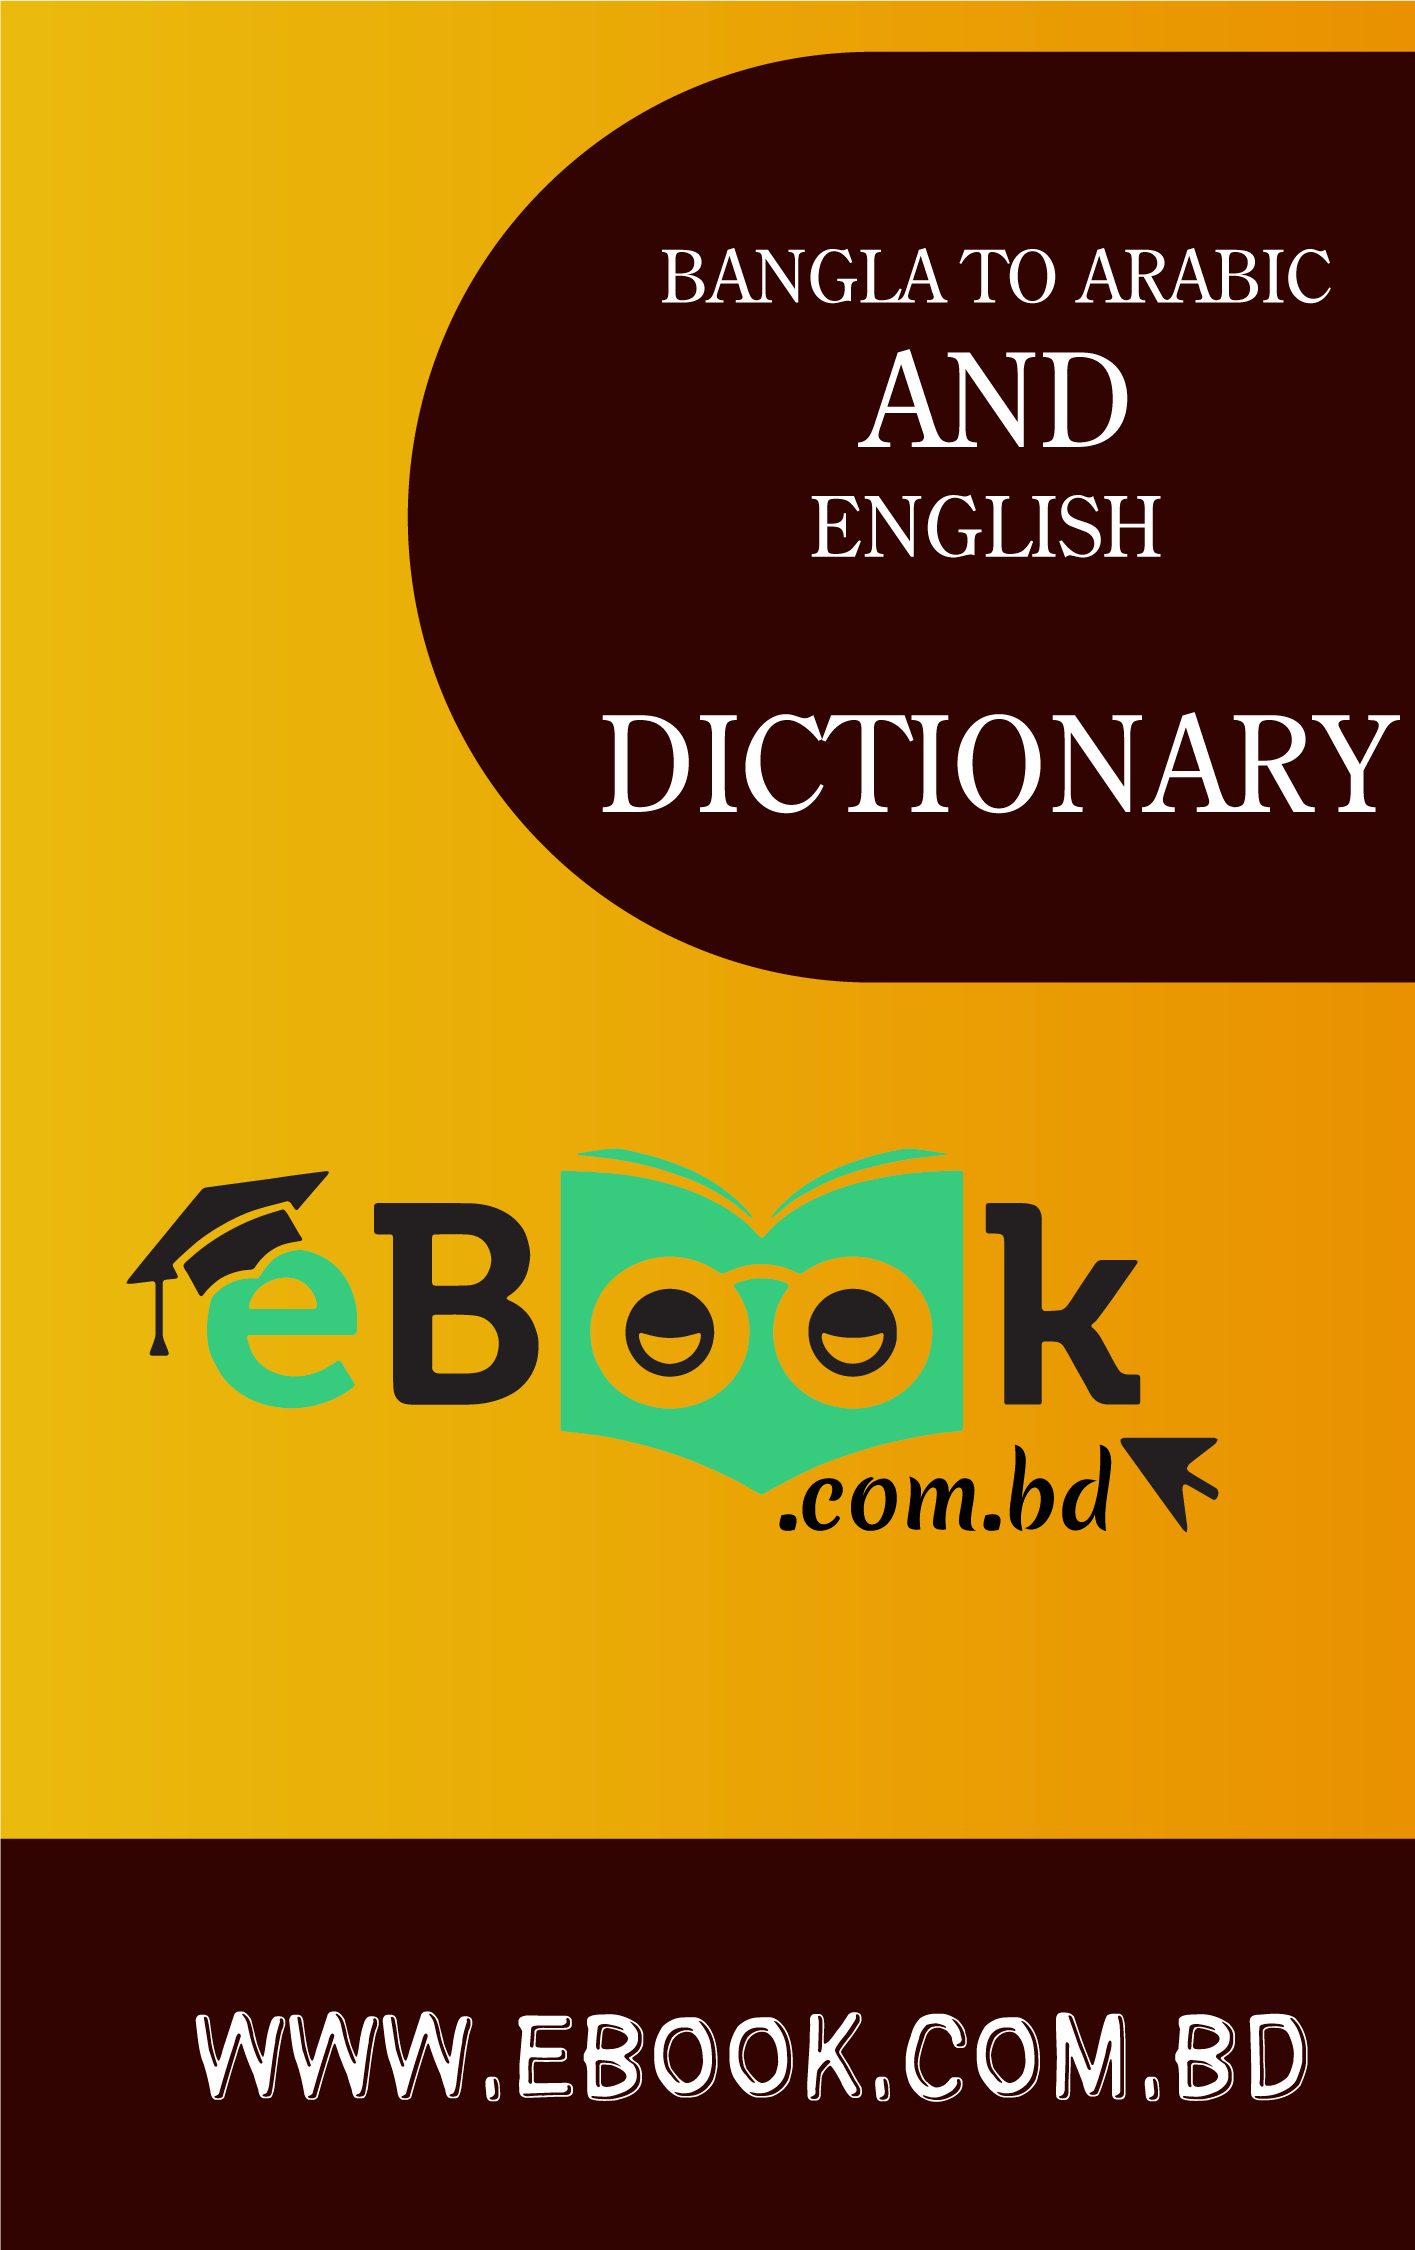 Thumbnail of Bangla to Arabic & English Dictionary